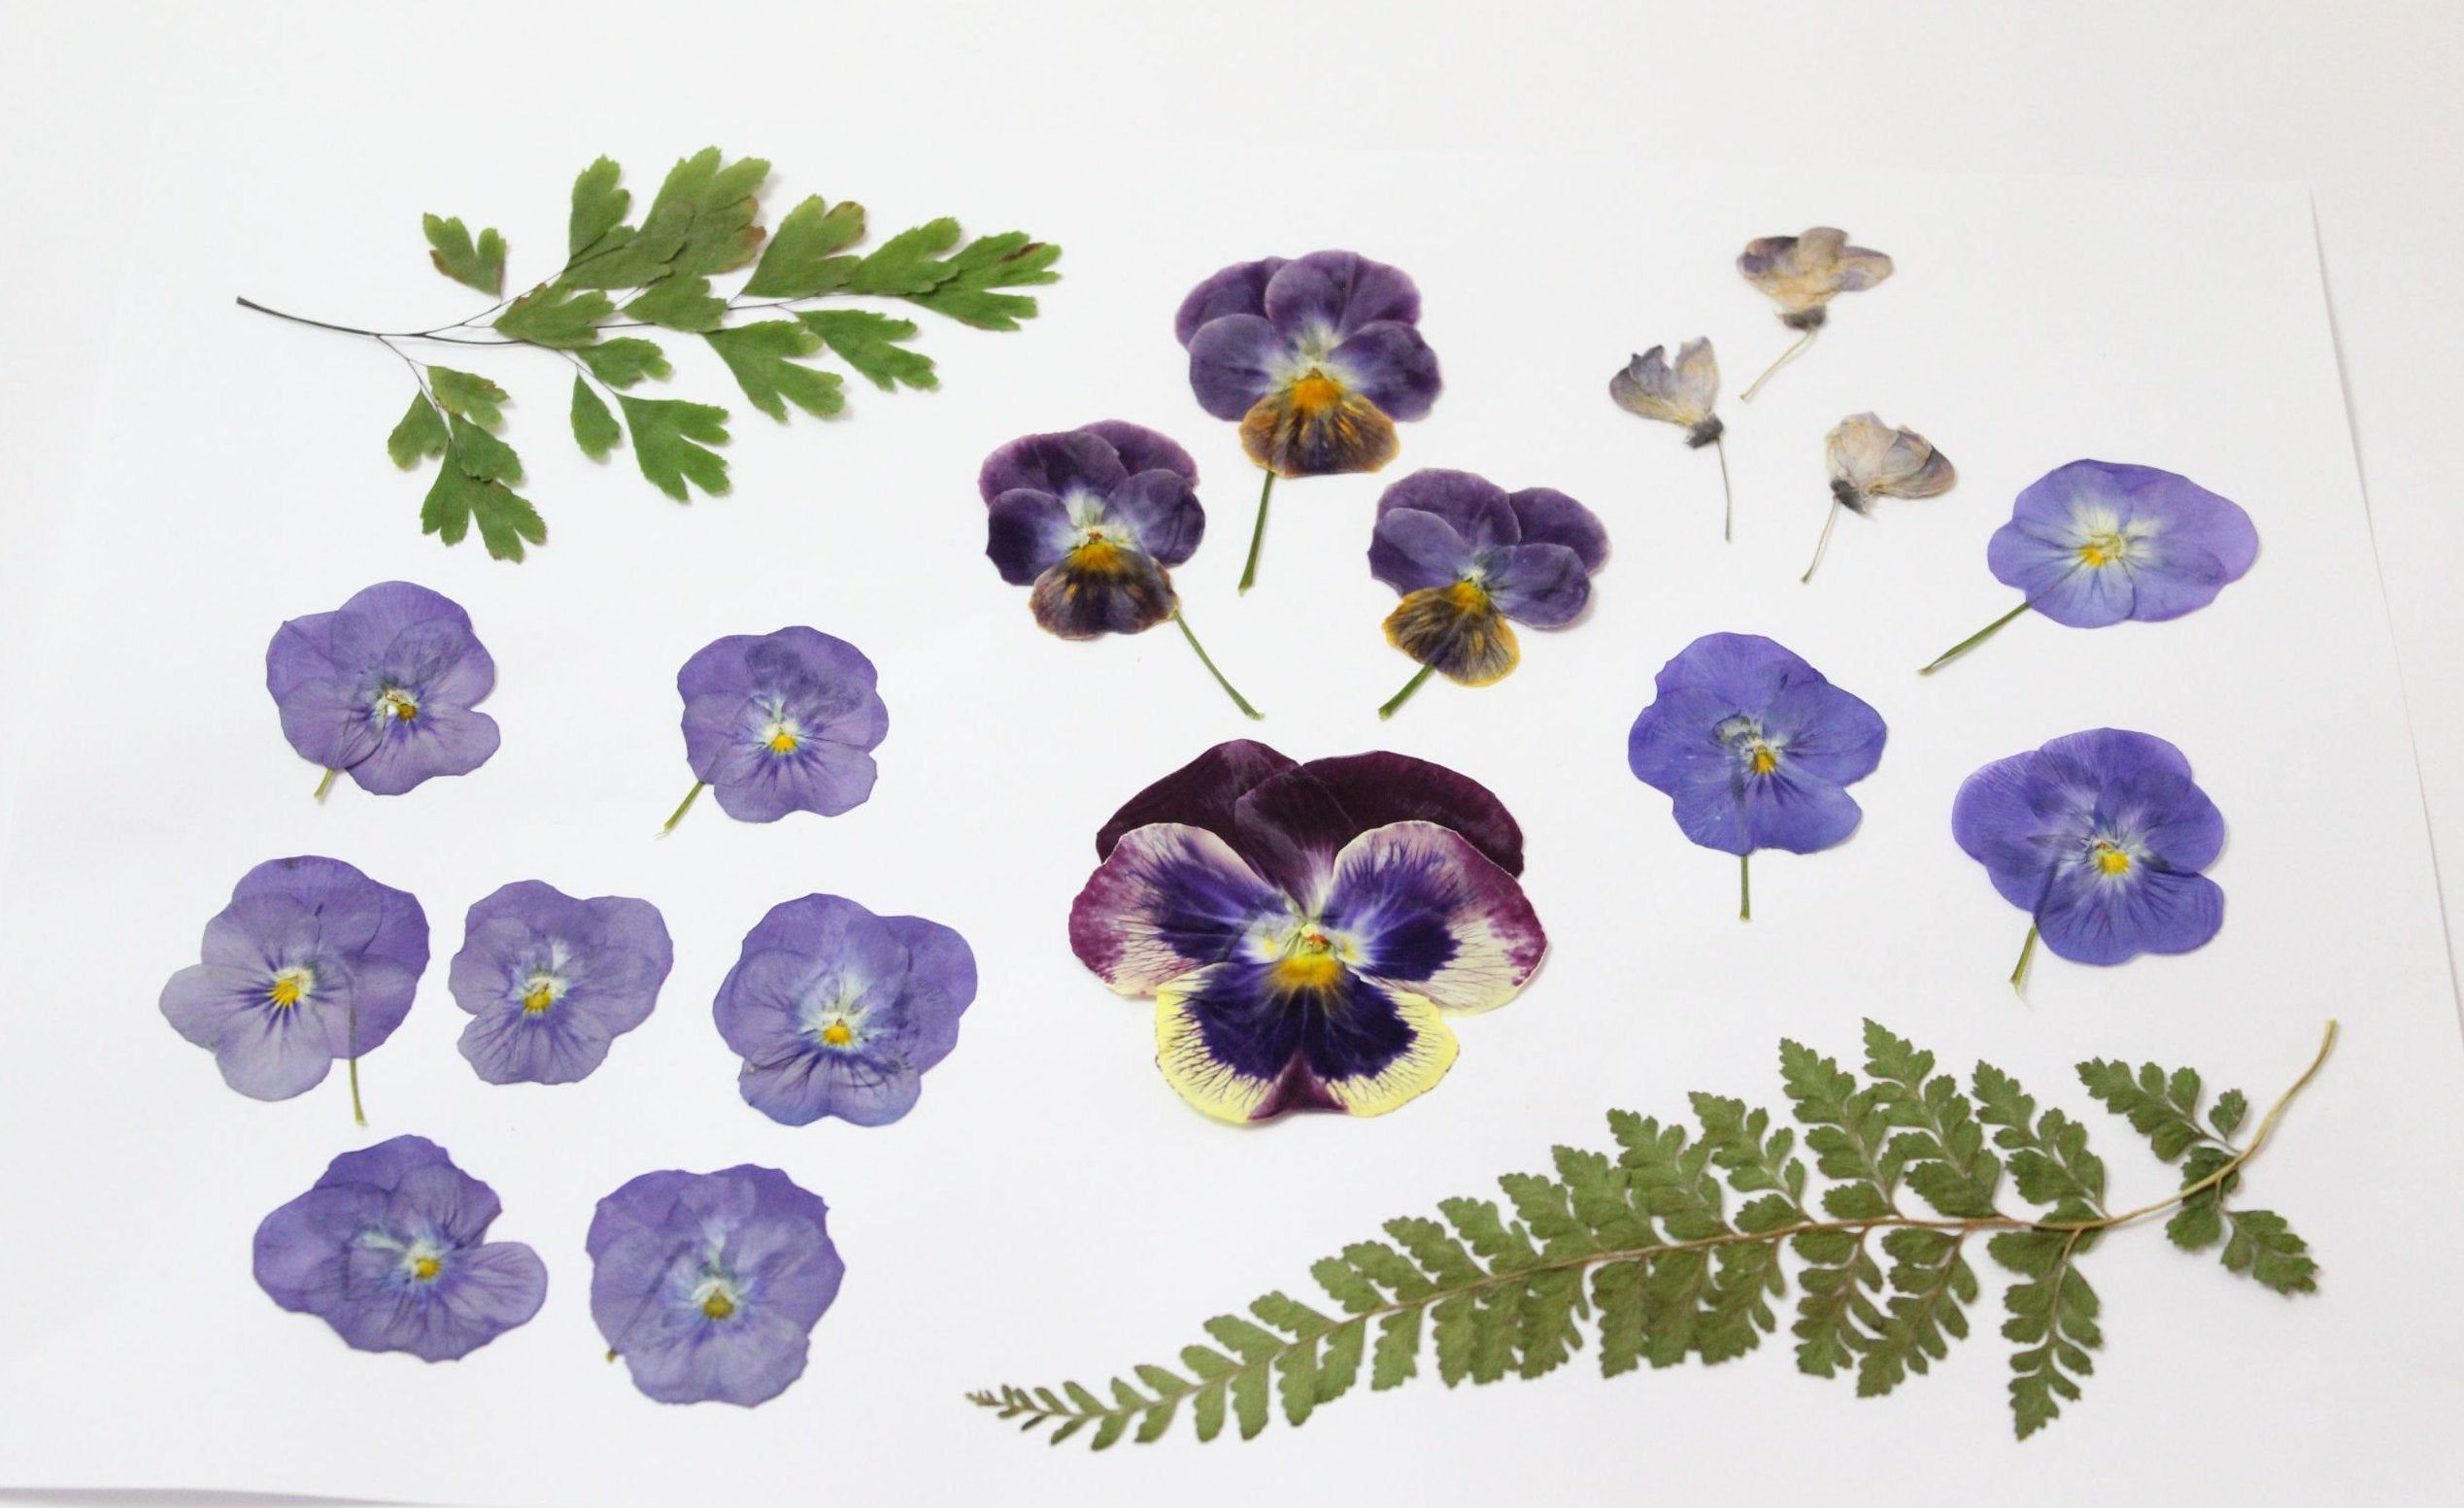 19pcs Mixed Dried Flowers And Pressed Leaves Maiden Hair Etsy In 2020 Flower Supplies Dried Flowers Pansies Flowers